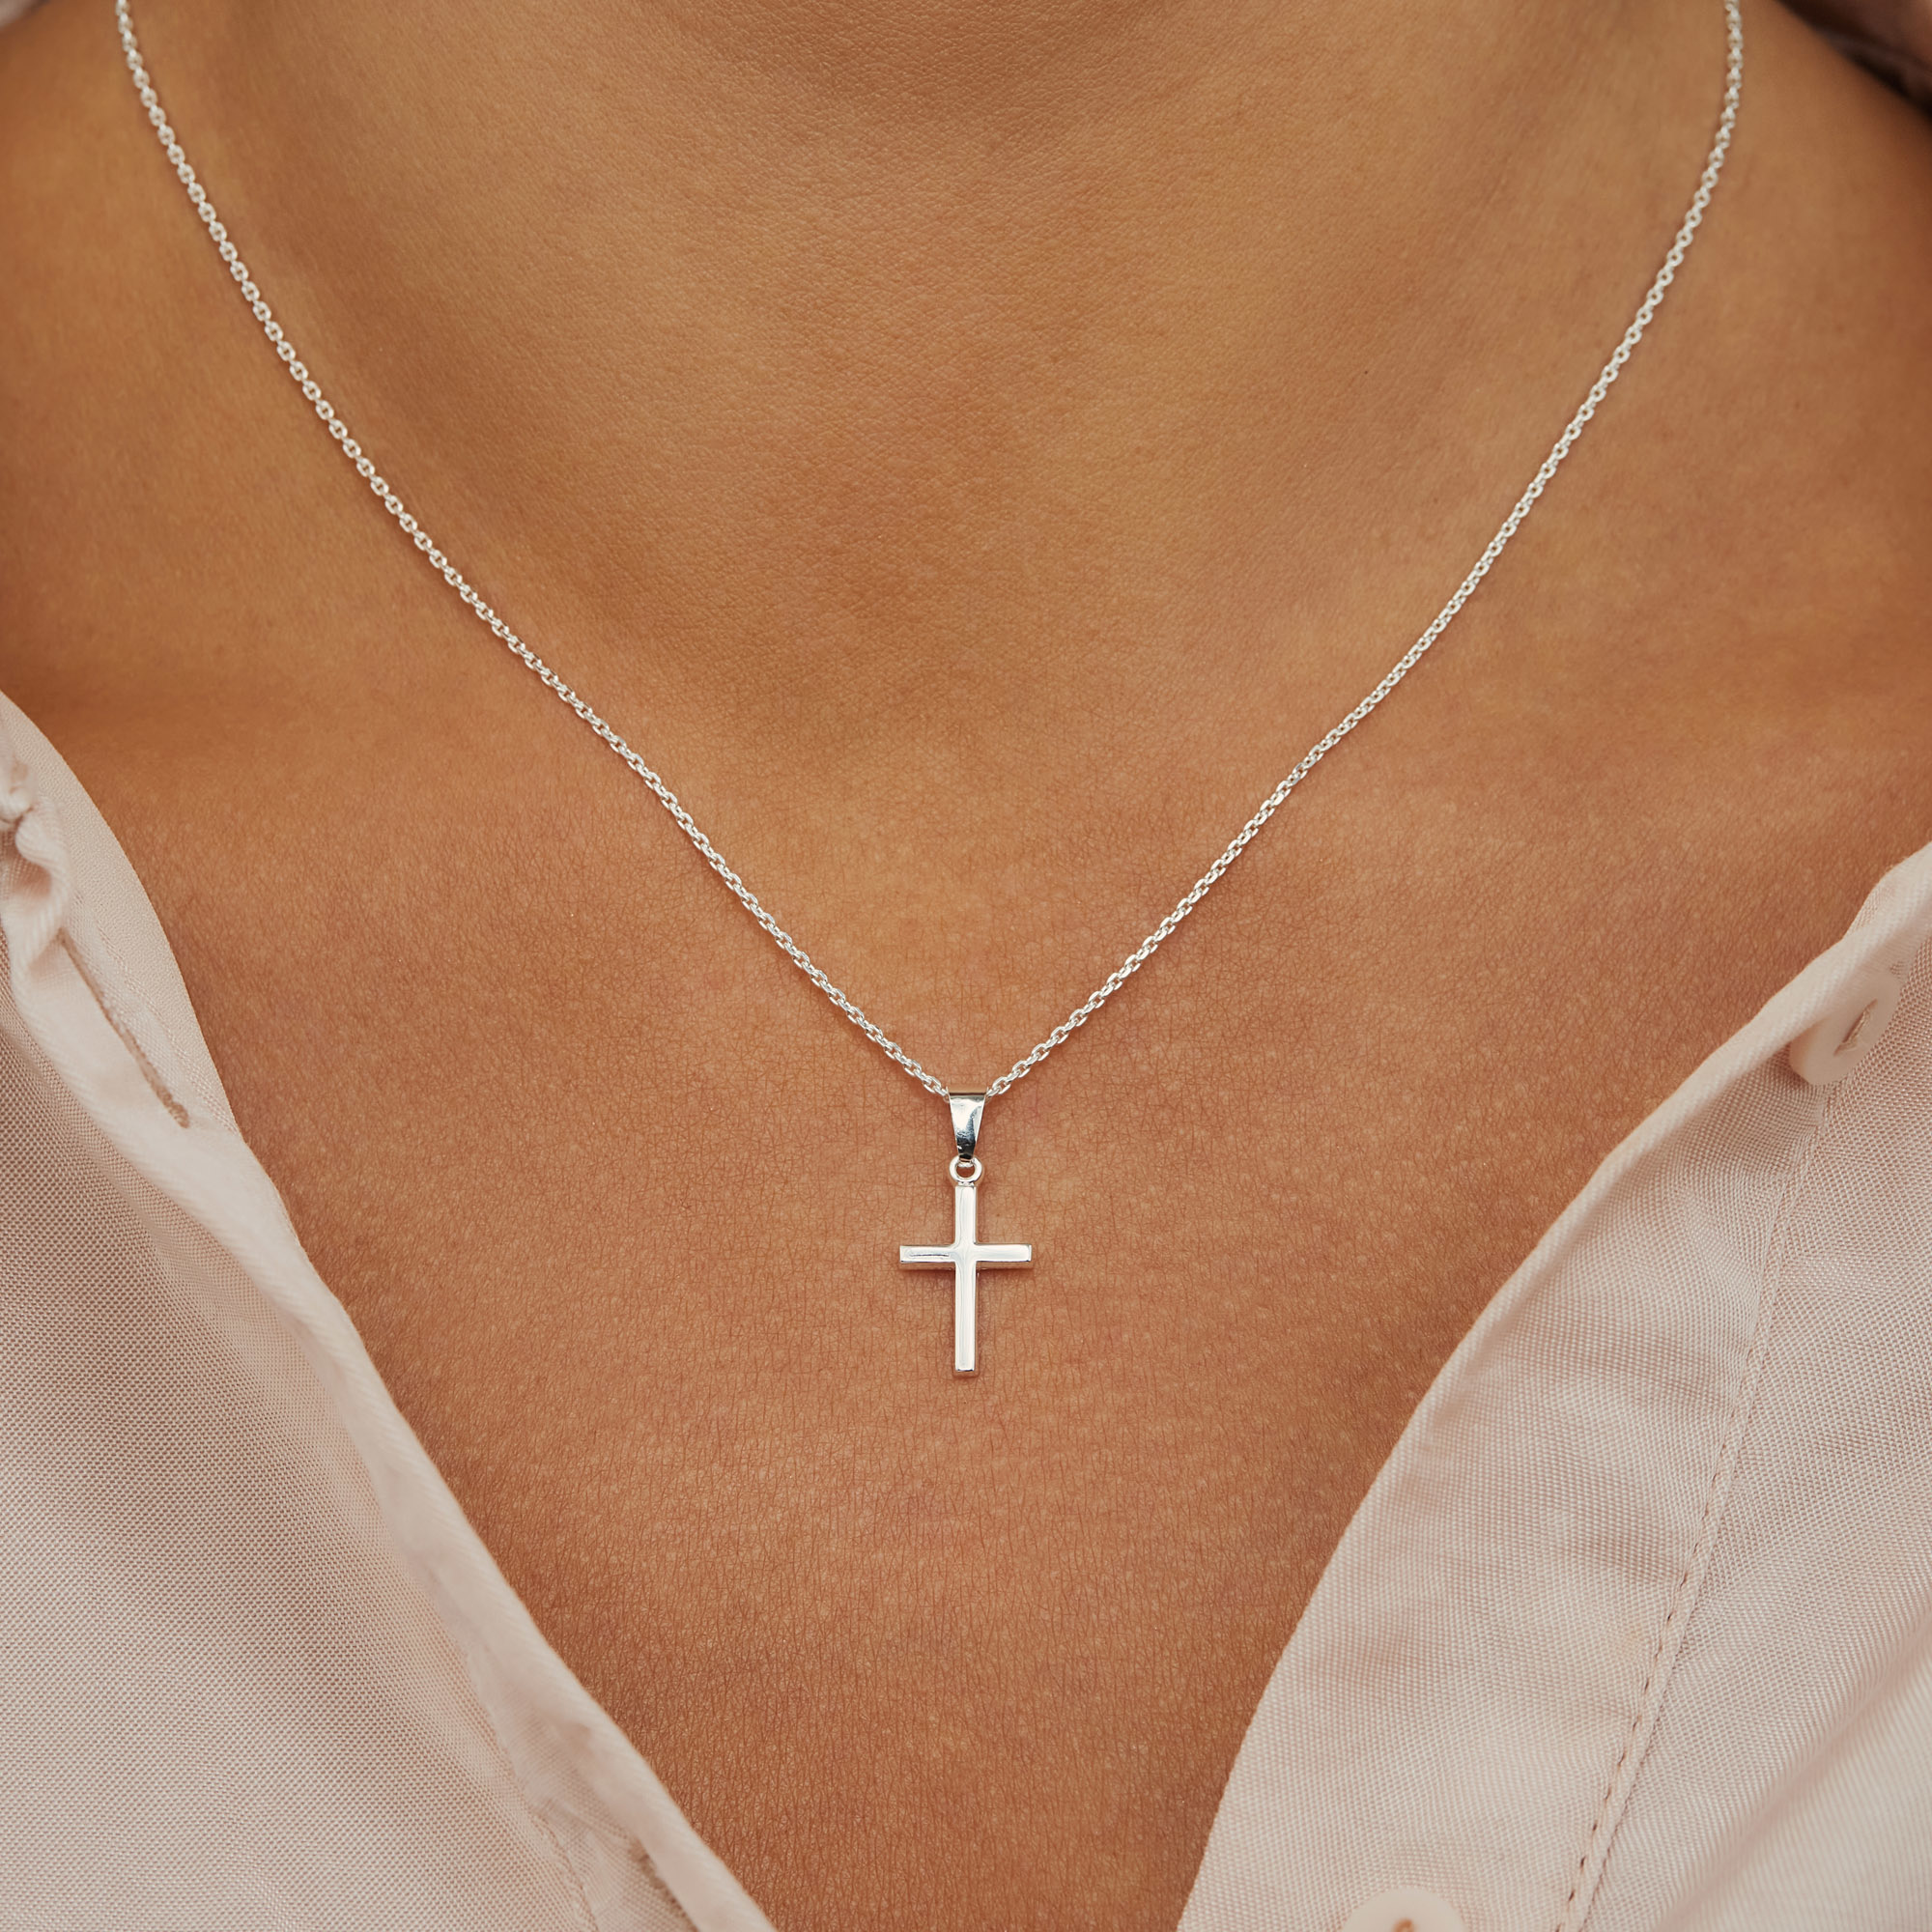 Selected Jewels Julie Théa 925 sterling silver necklace with cross